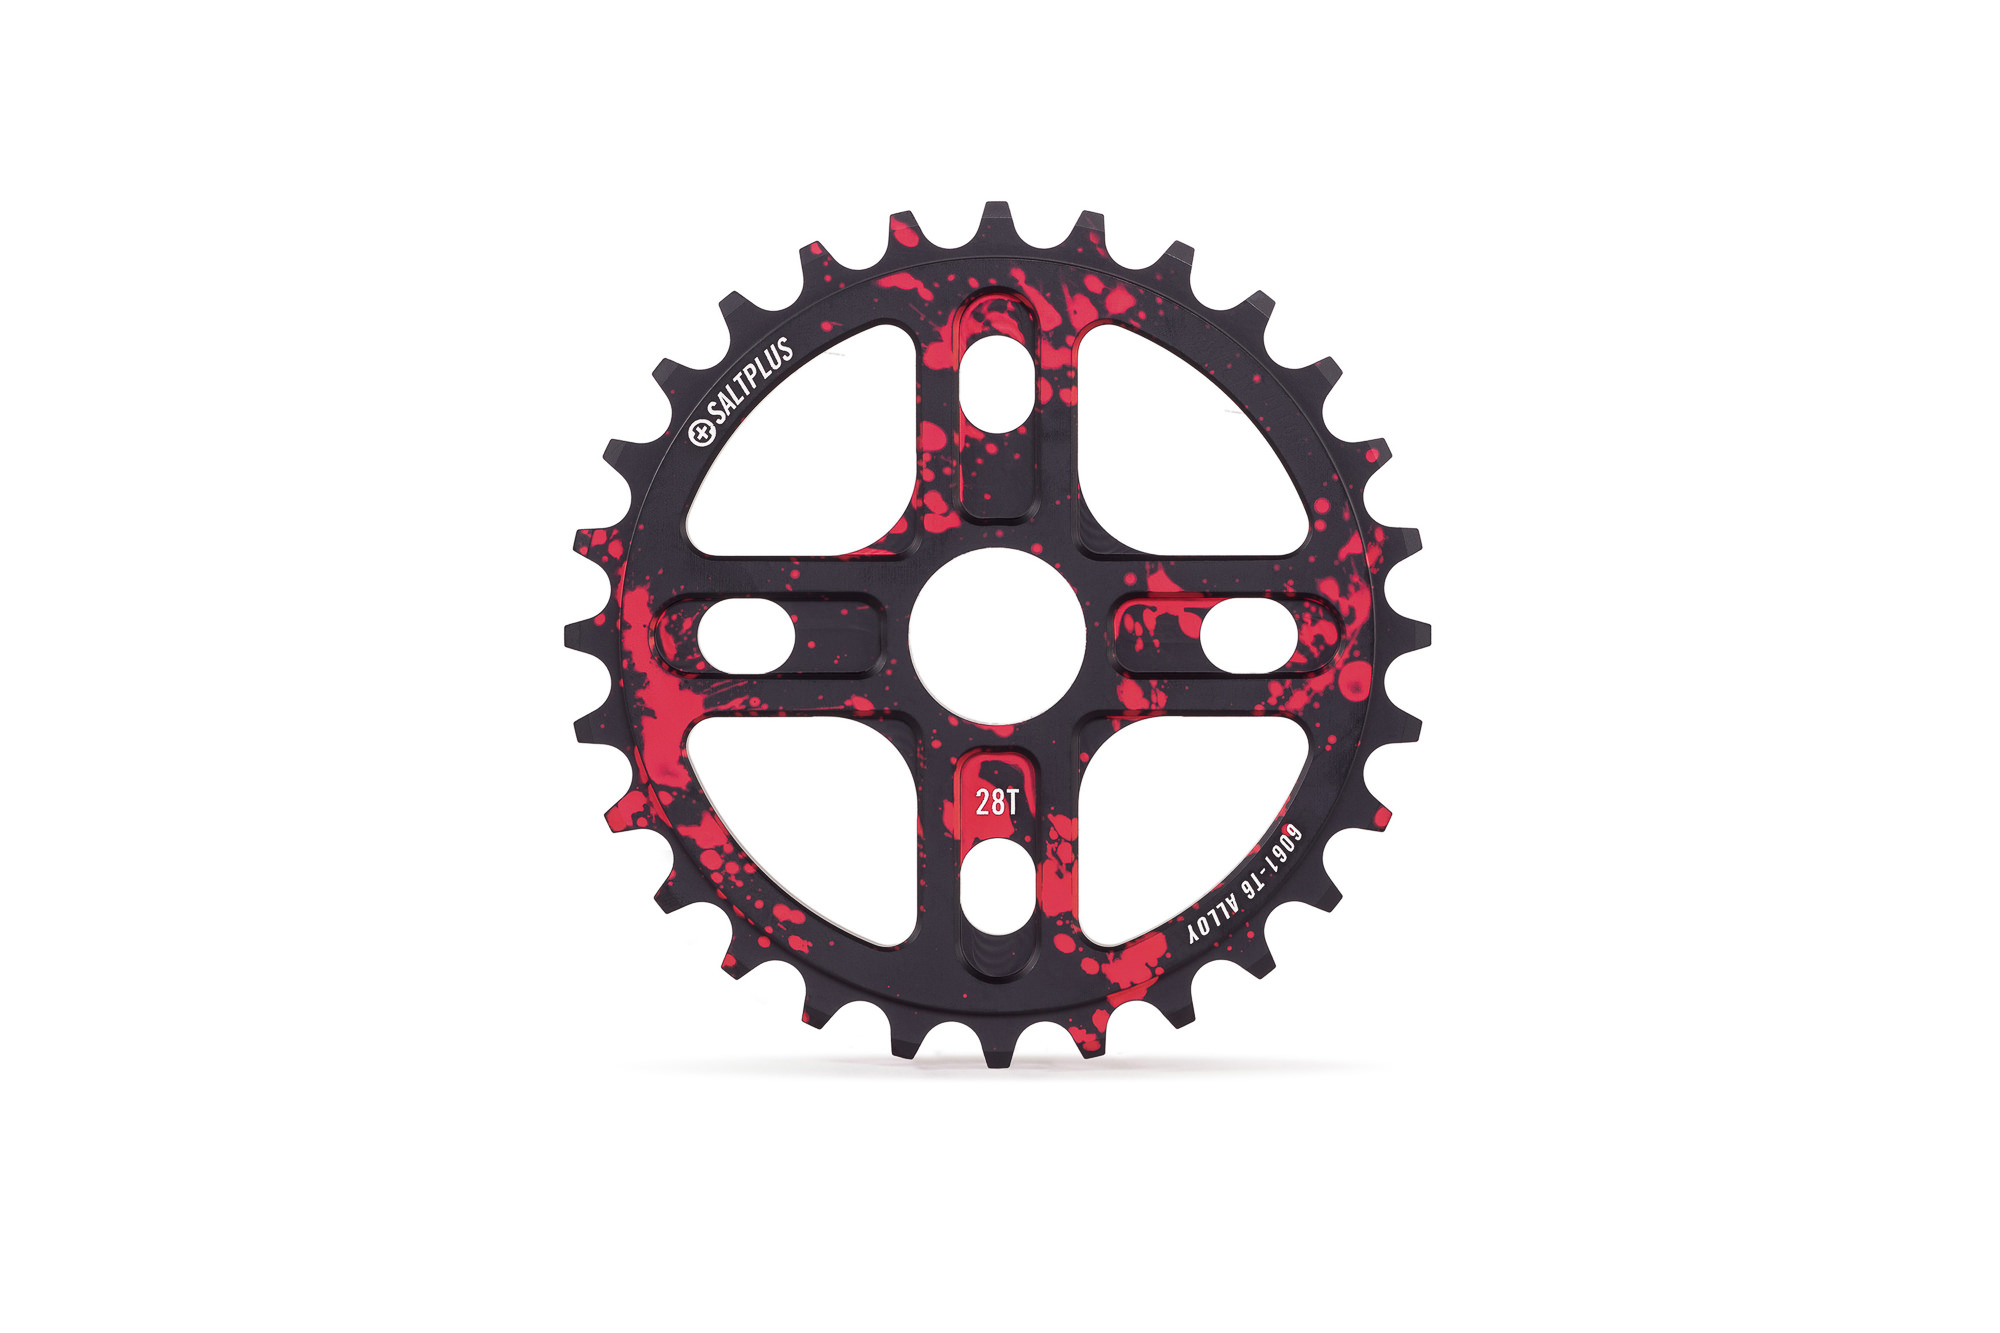 SaltPlus_Manta_sprocket_28t_black_red_splatter_01